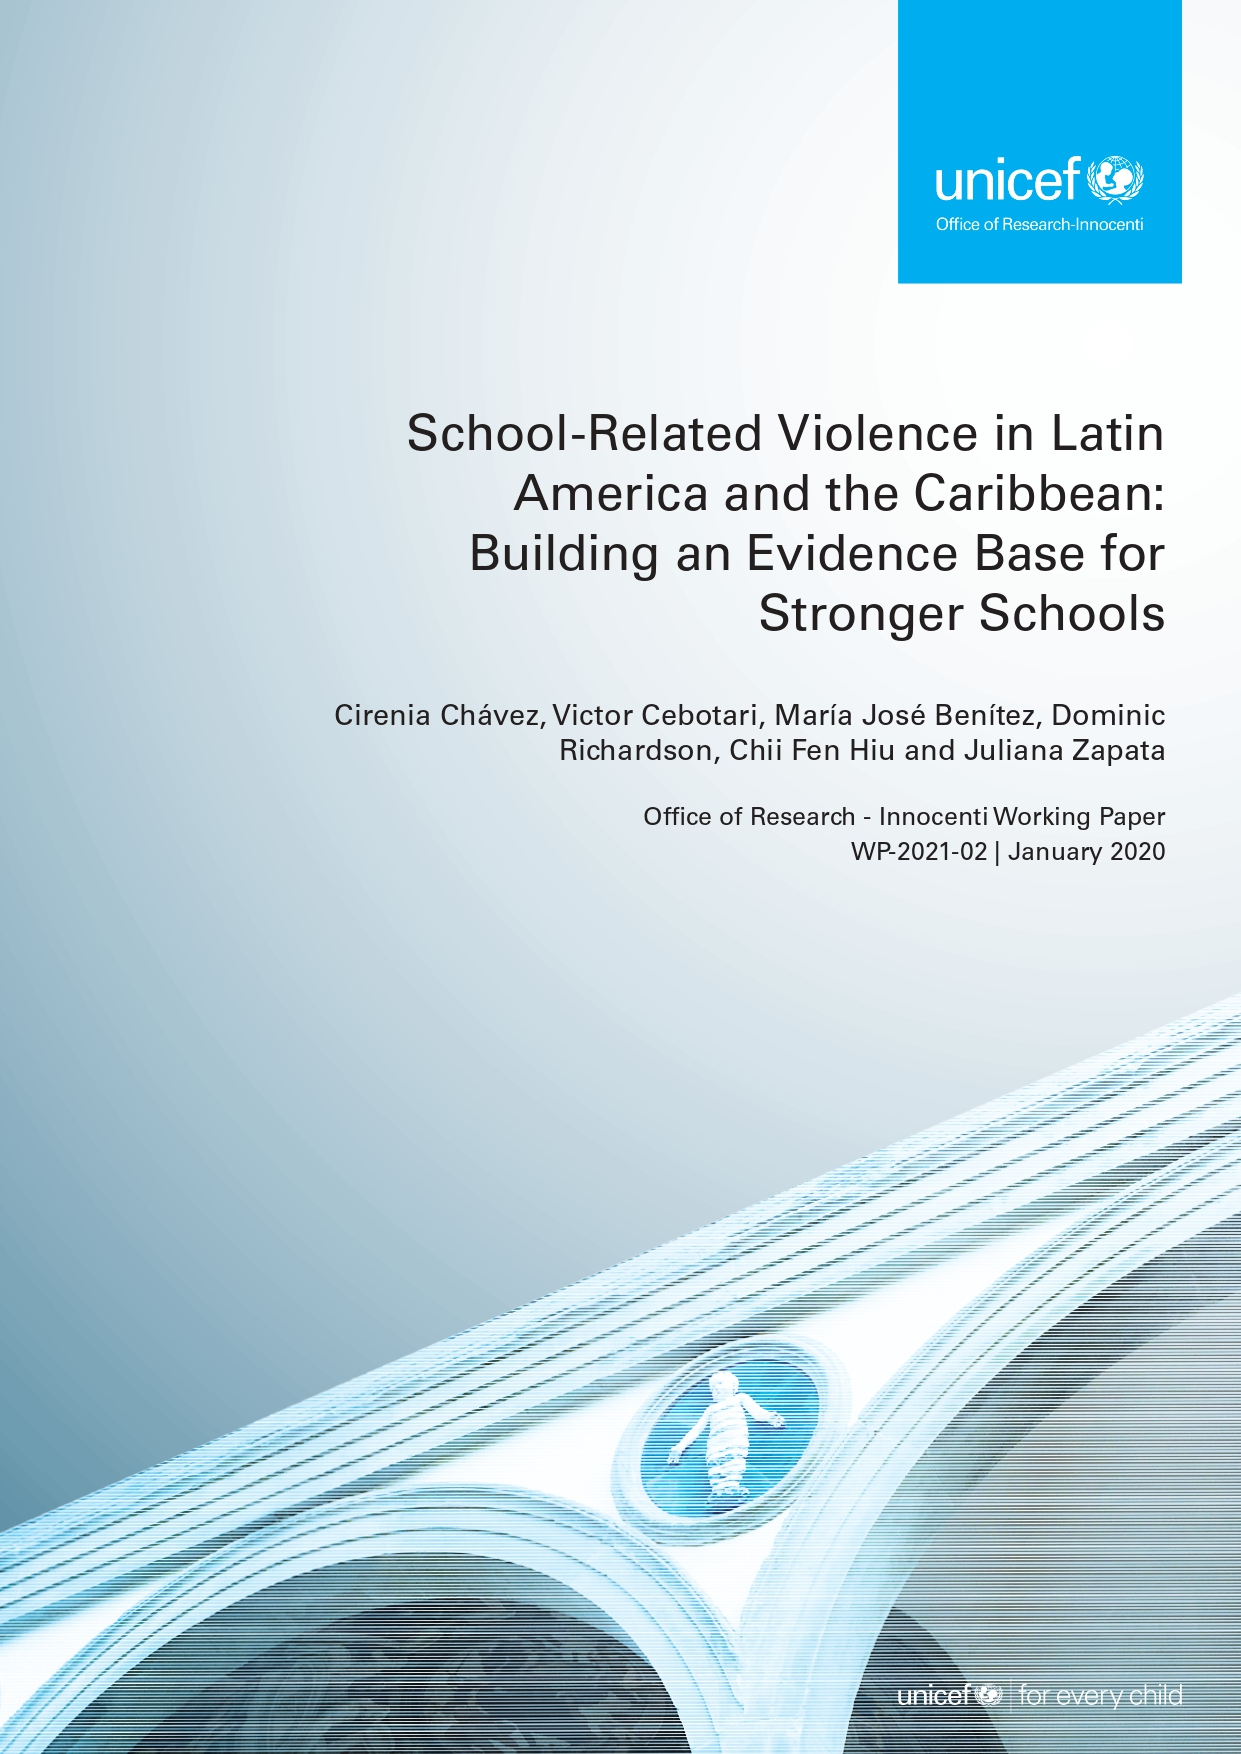 School-Related Violence in the Latin America and the Caribbean: Building an Evidence Base for Stronger Schools